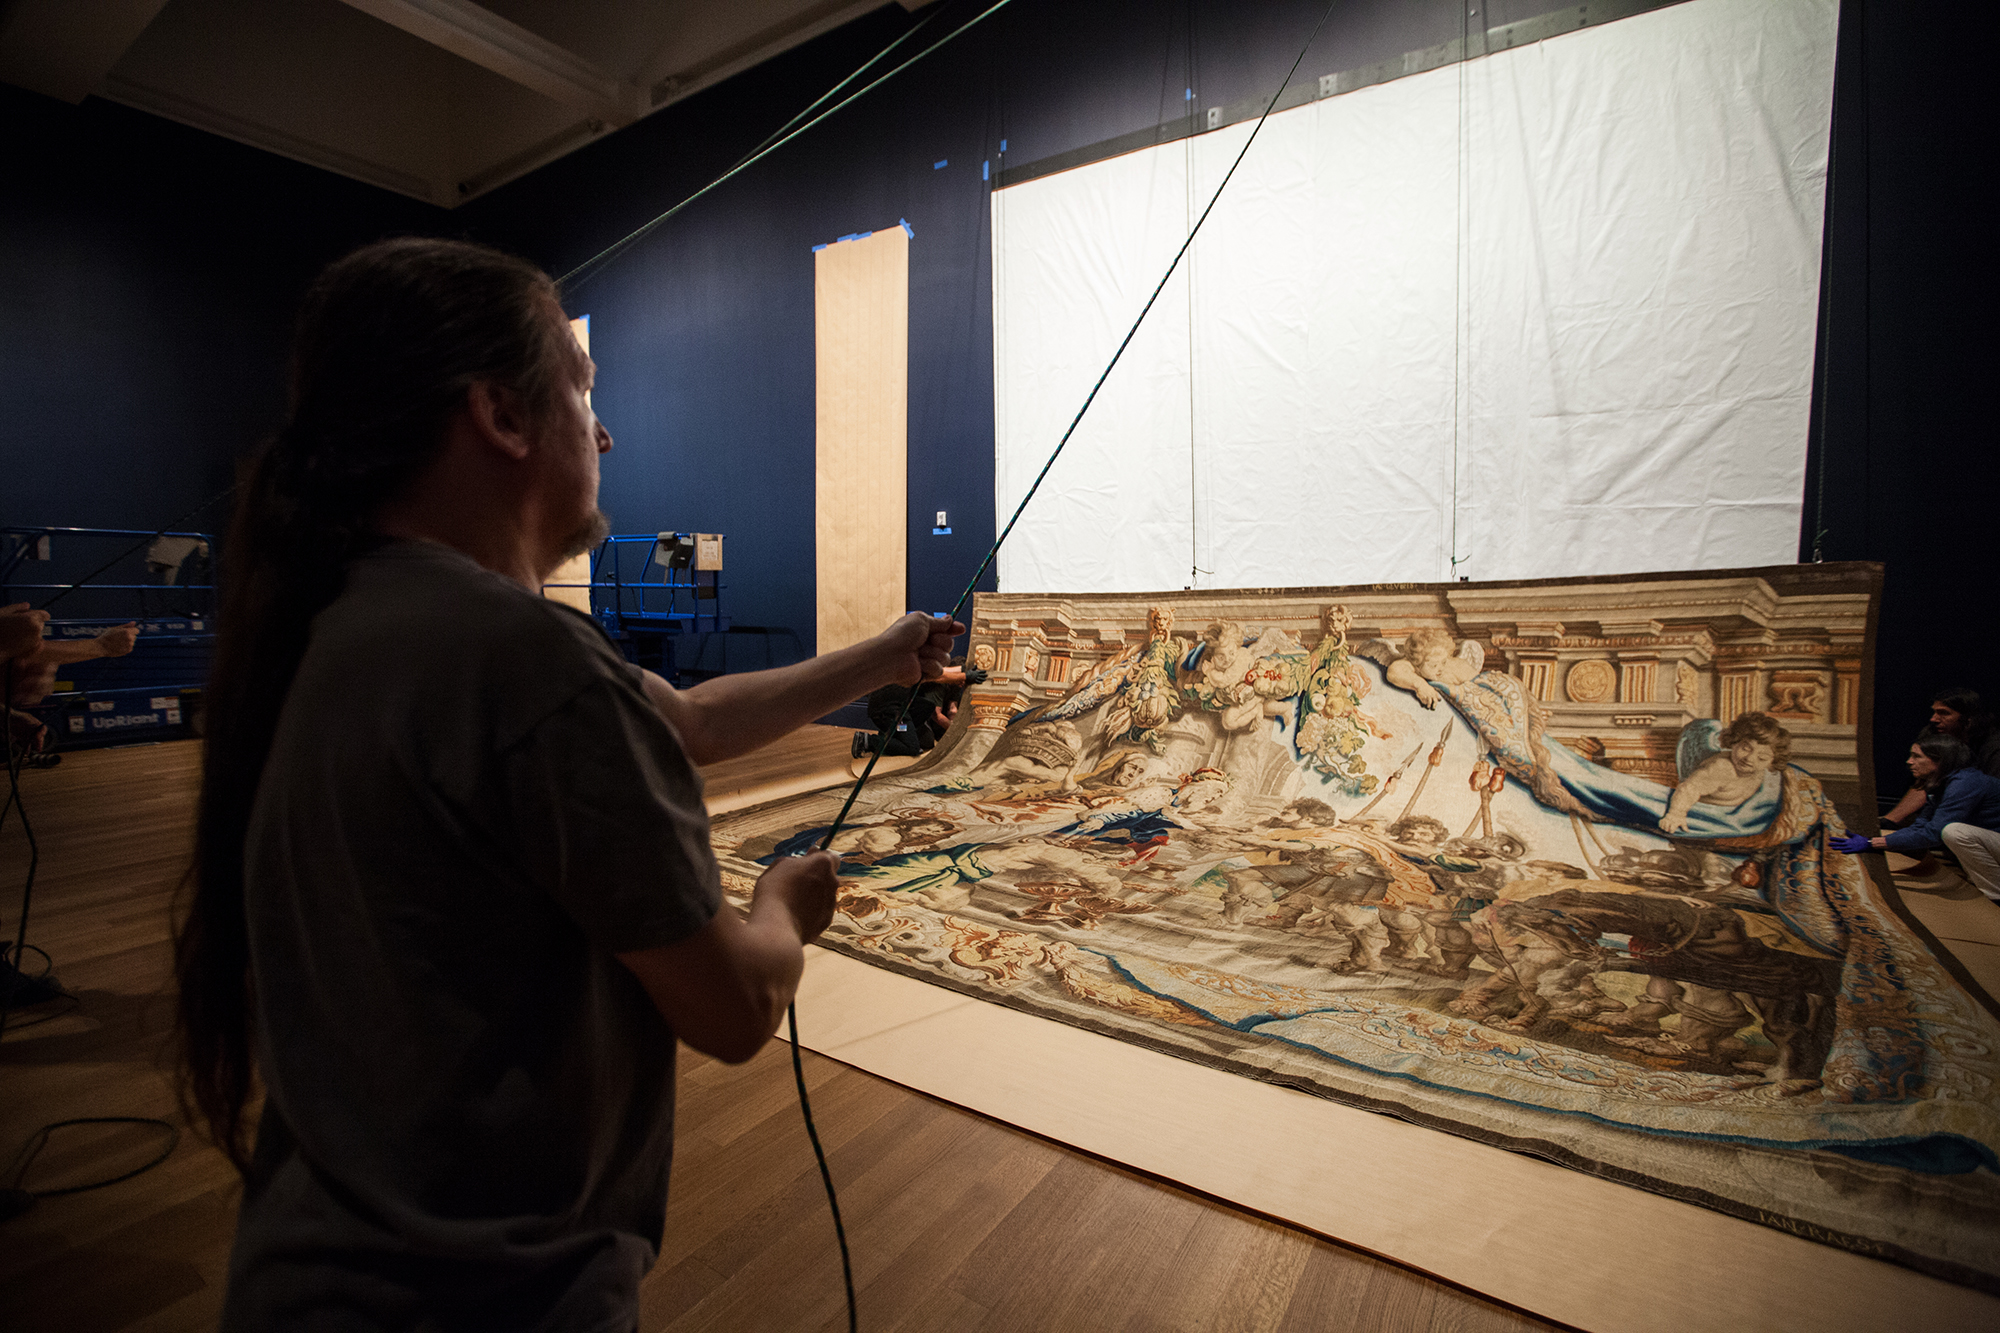 The backside of the tapestry is equipped with Velcro and hooks attached to the tapestry backing used to hoist it up to meet the wall-mounted Velcro.